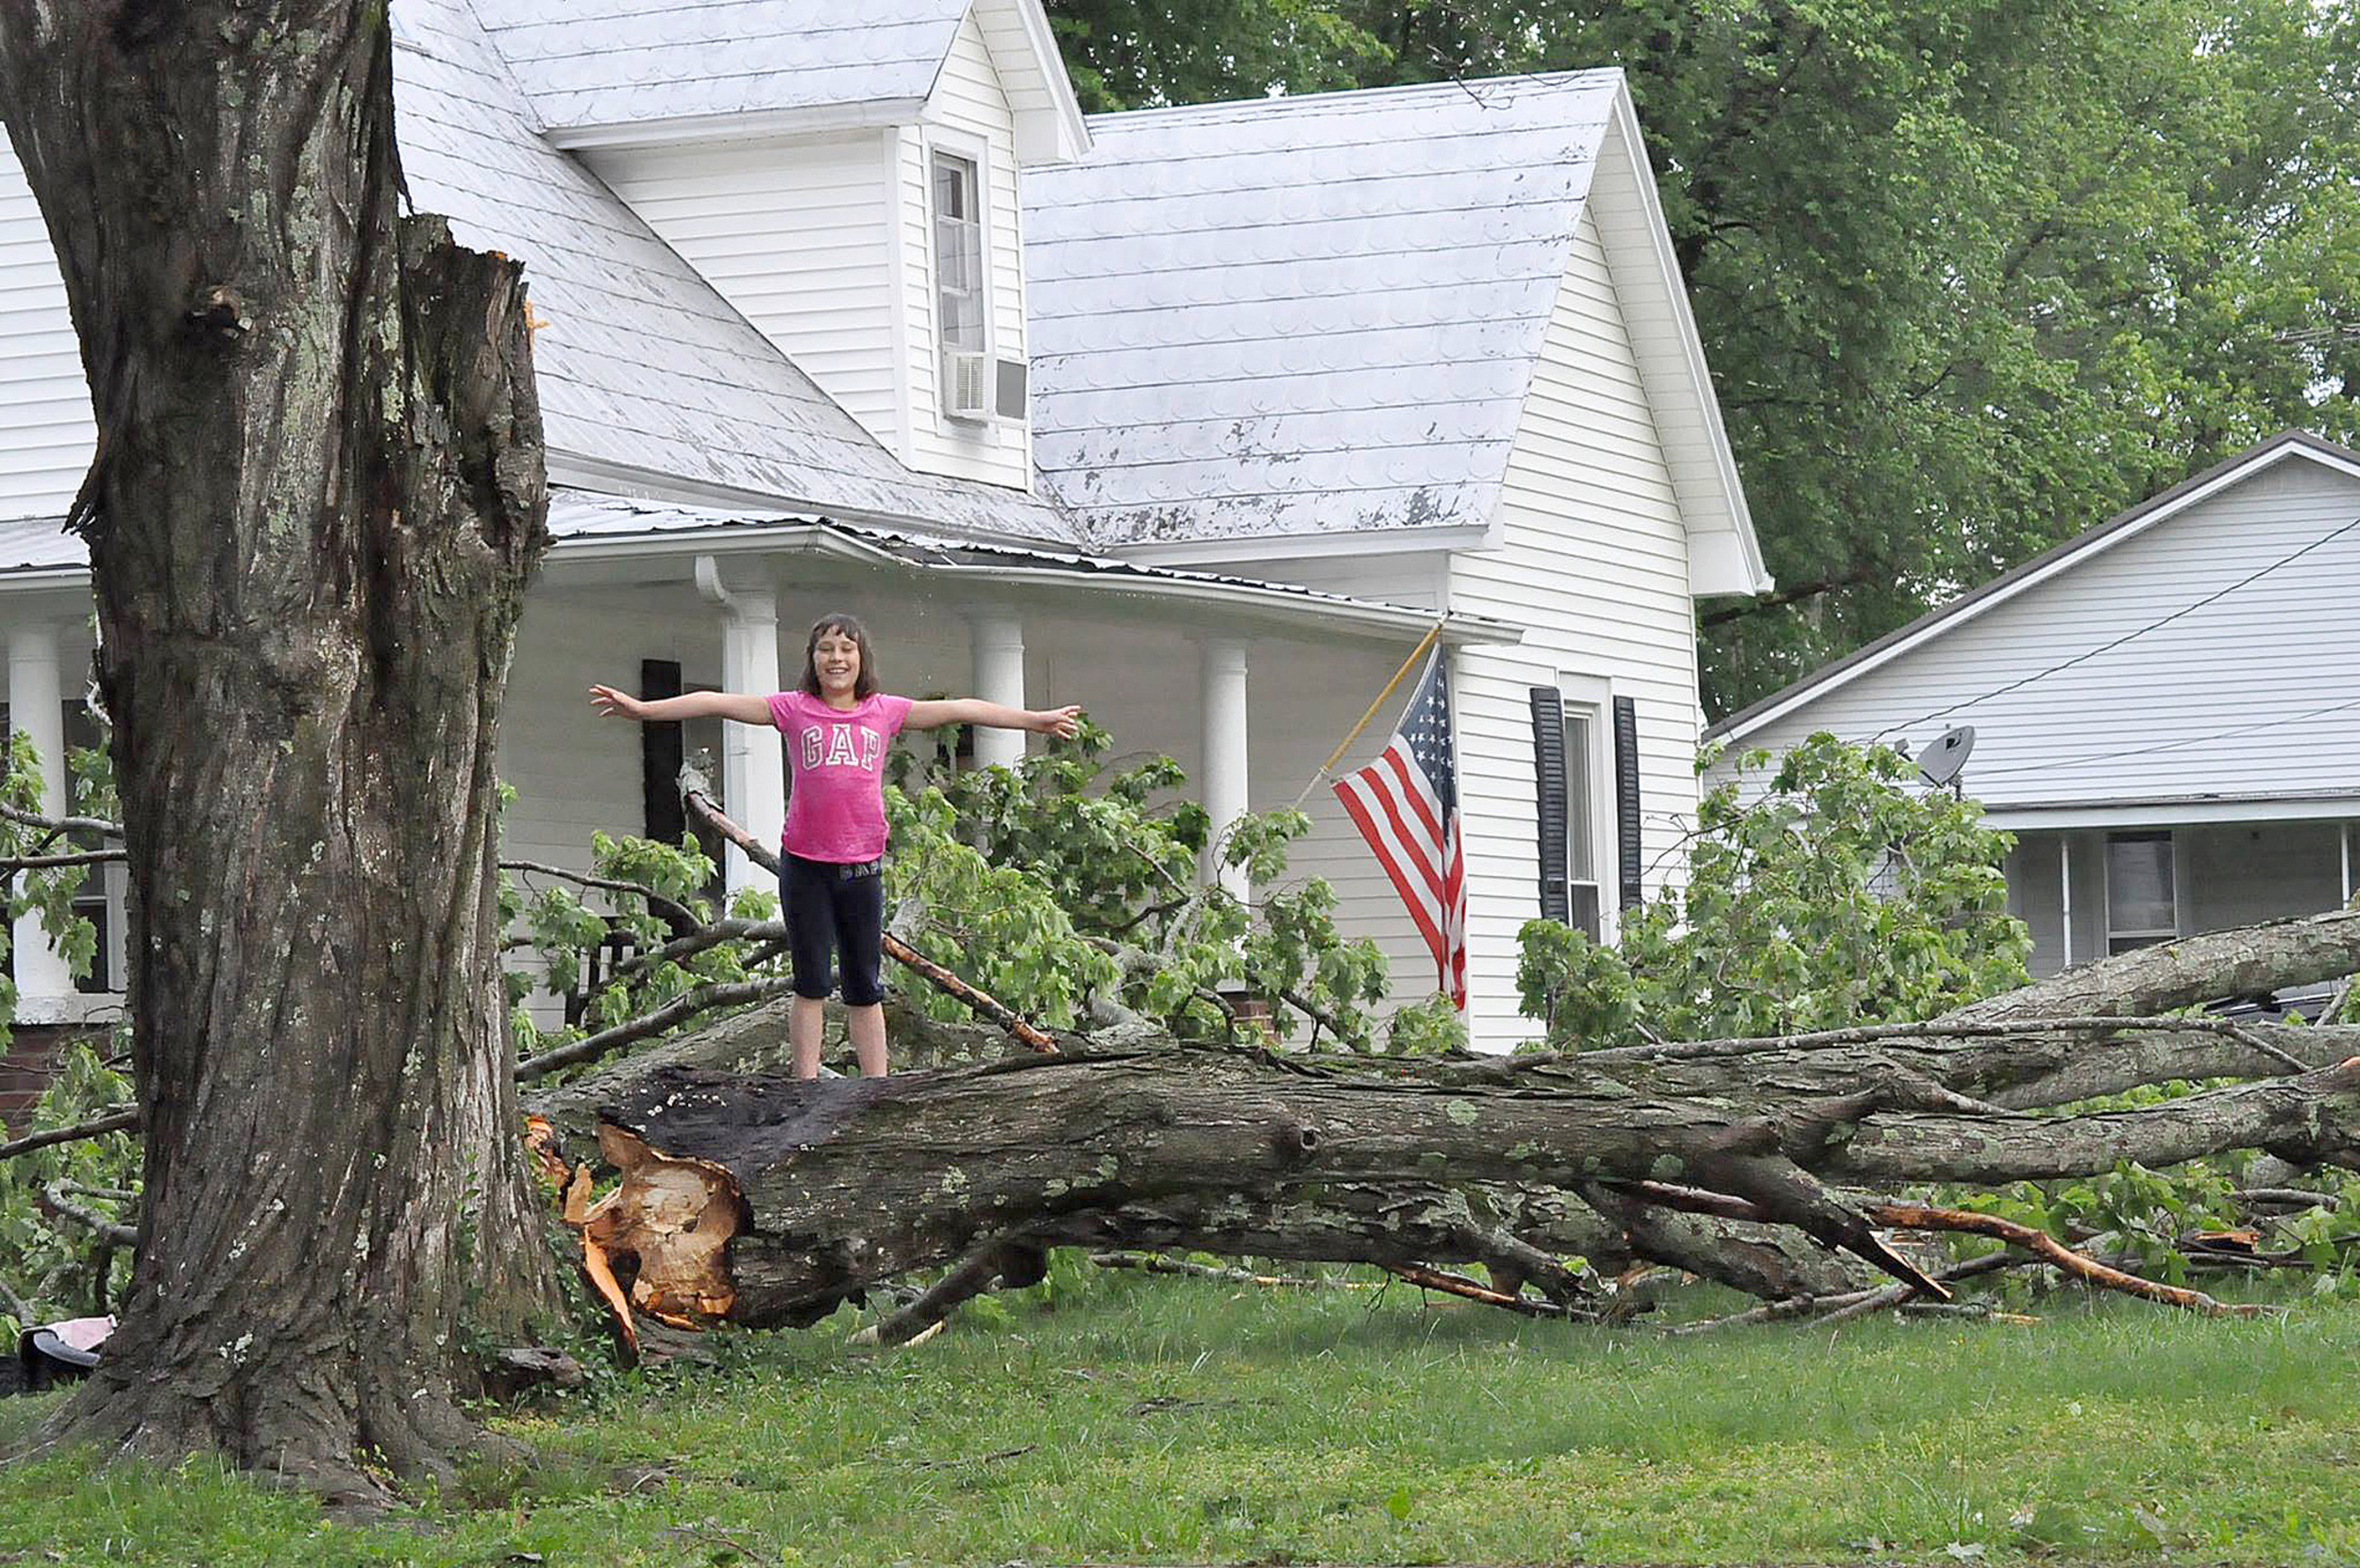 rentals body herald stories lake hollow sought cabins in citizen dale cabin treedown mishap